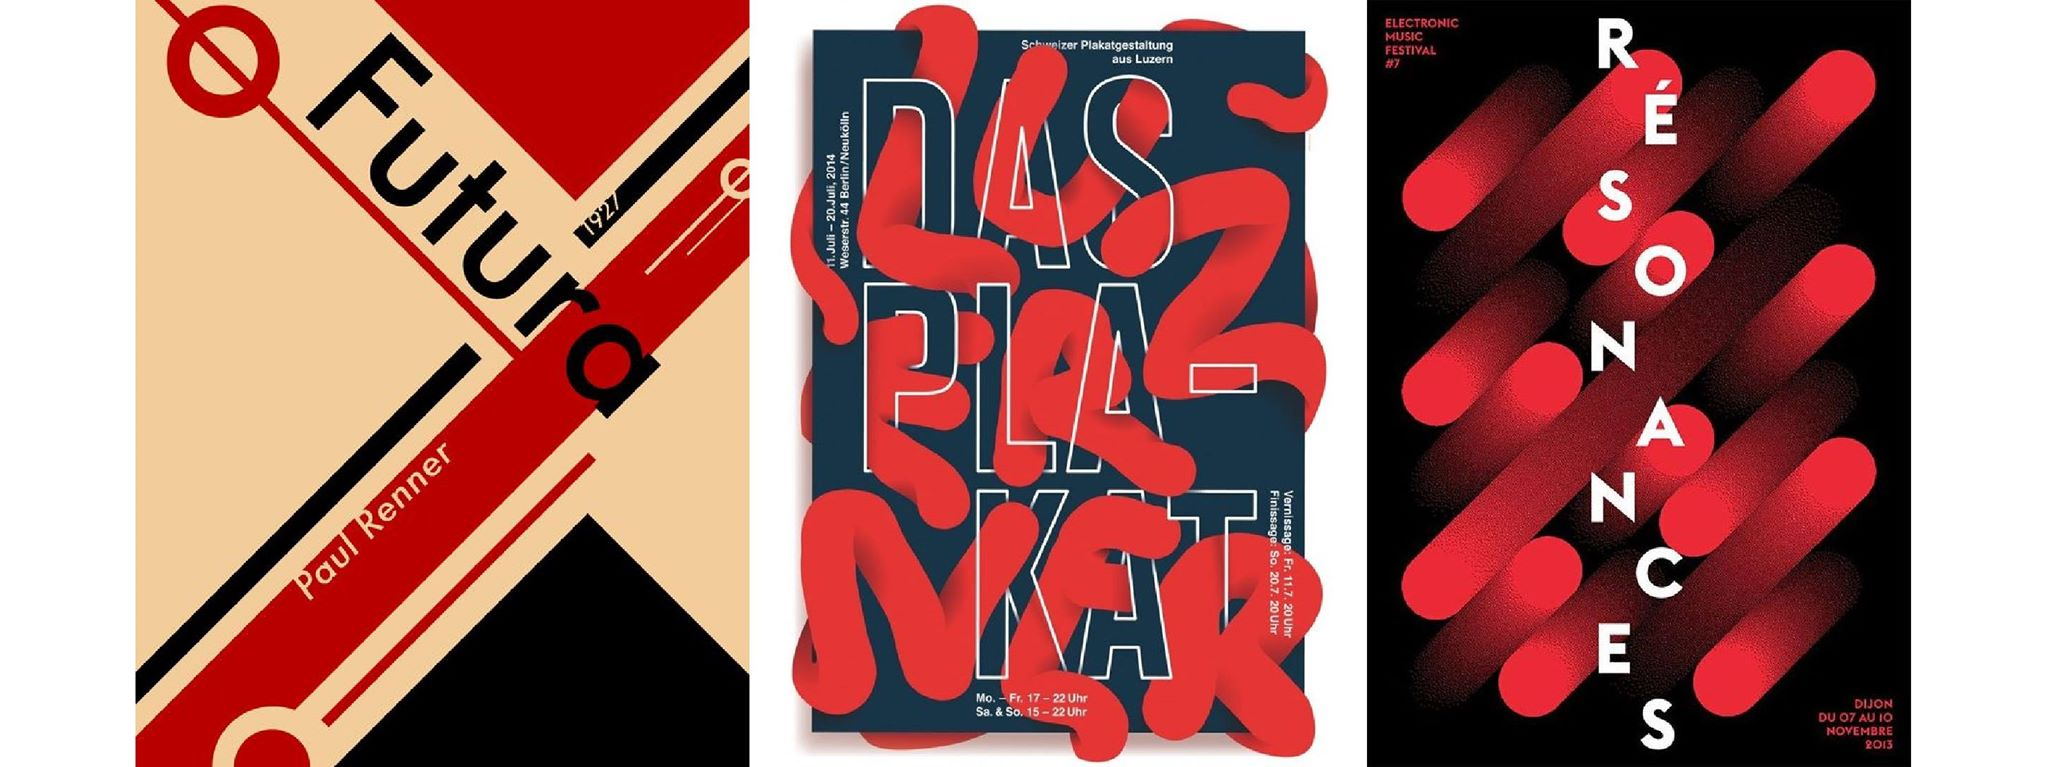 Modern typographic posters are just abstract paintings